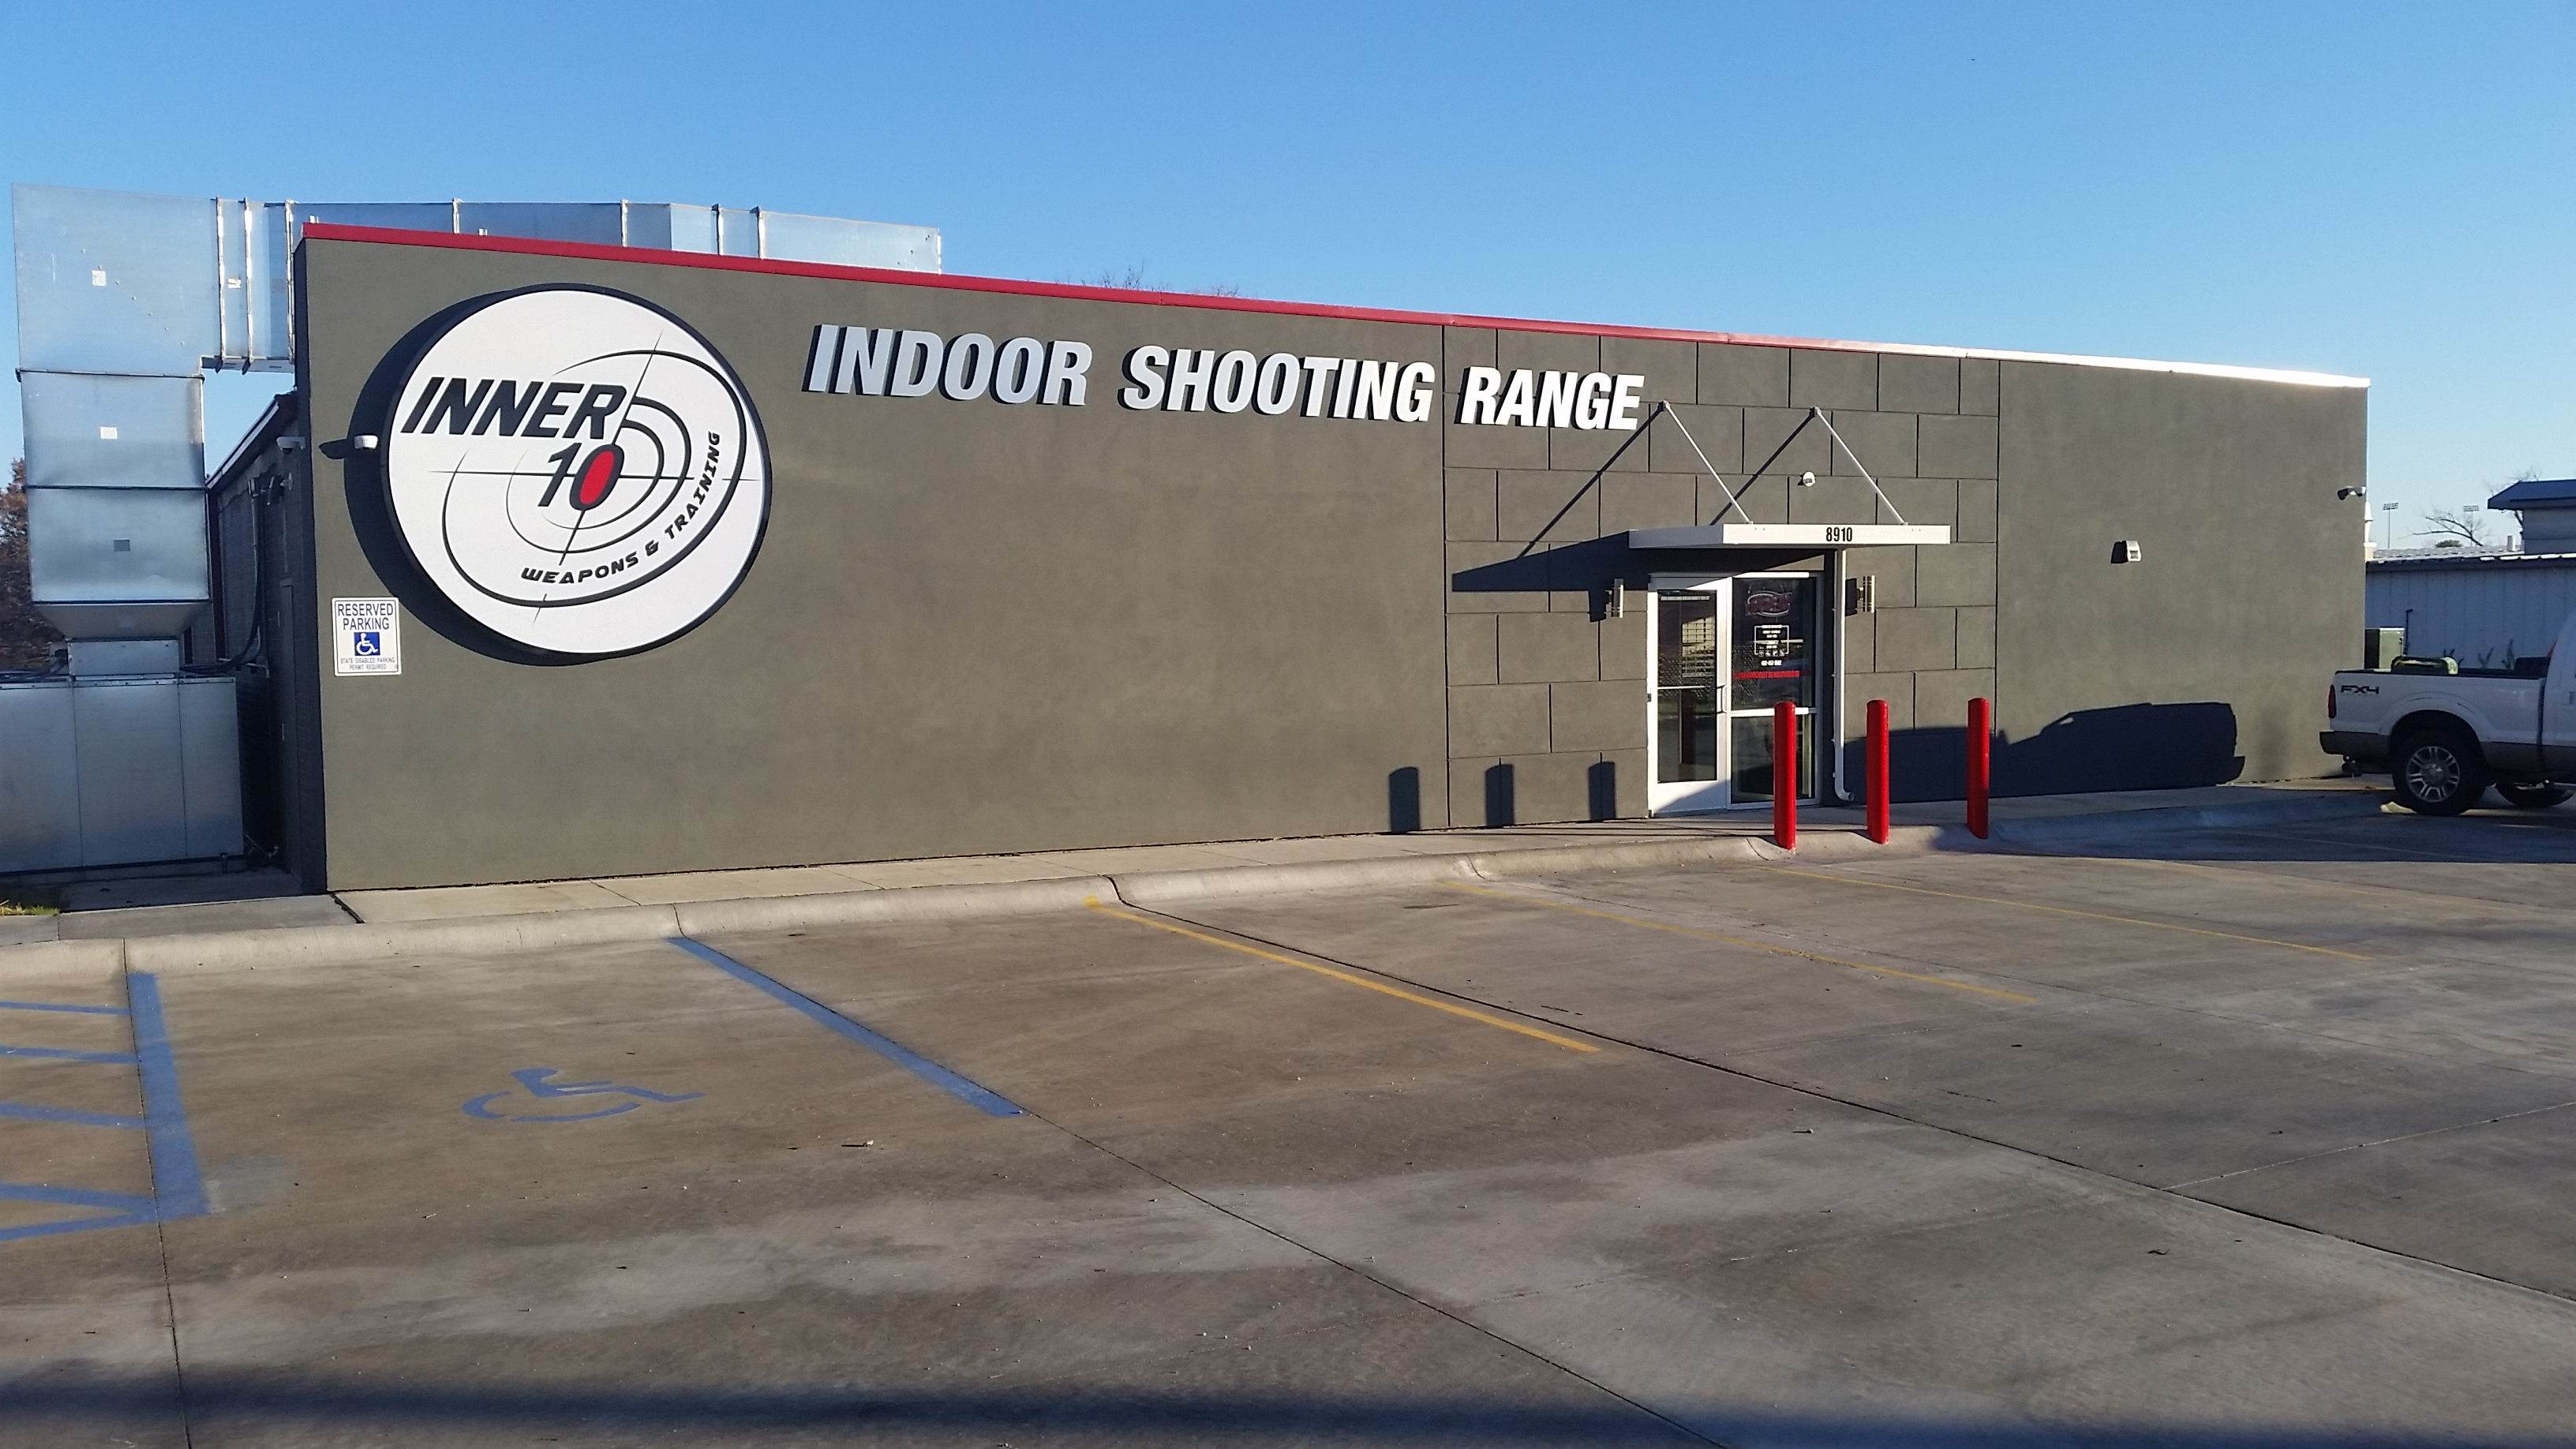 Inner 10 Weapons and Training Logo - Omaha's Premier Indoor Shooting Range